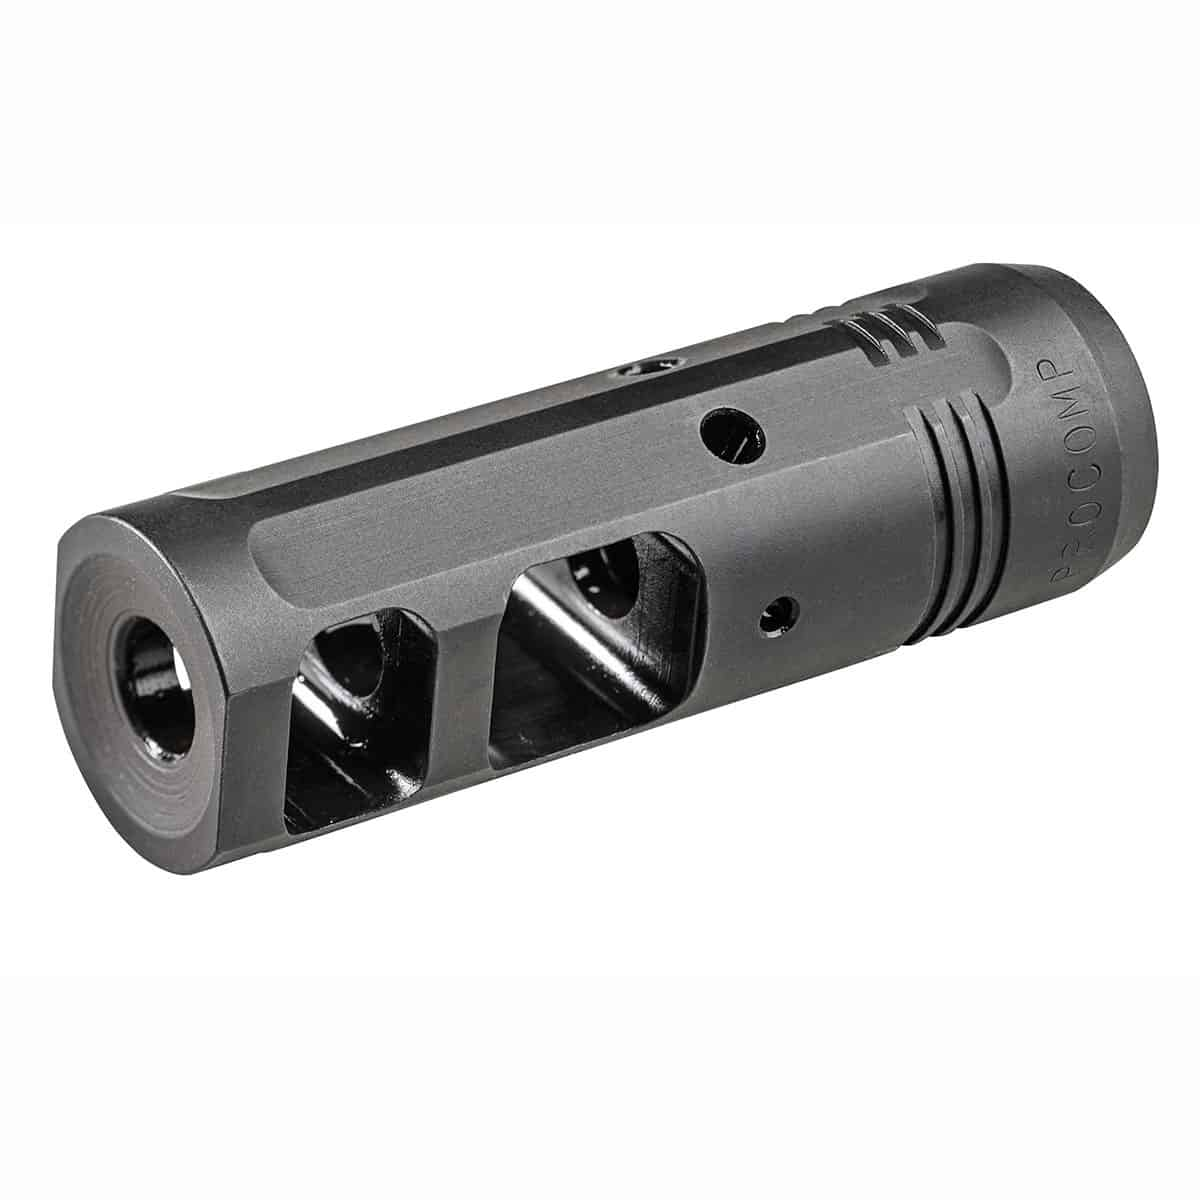 The 7 Best AR 10 Muzzle Breaks Reviewed! [2019] - Reduce the Recoil!